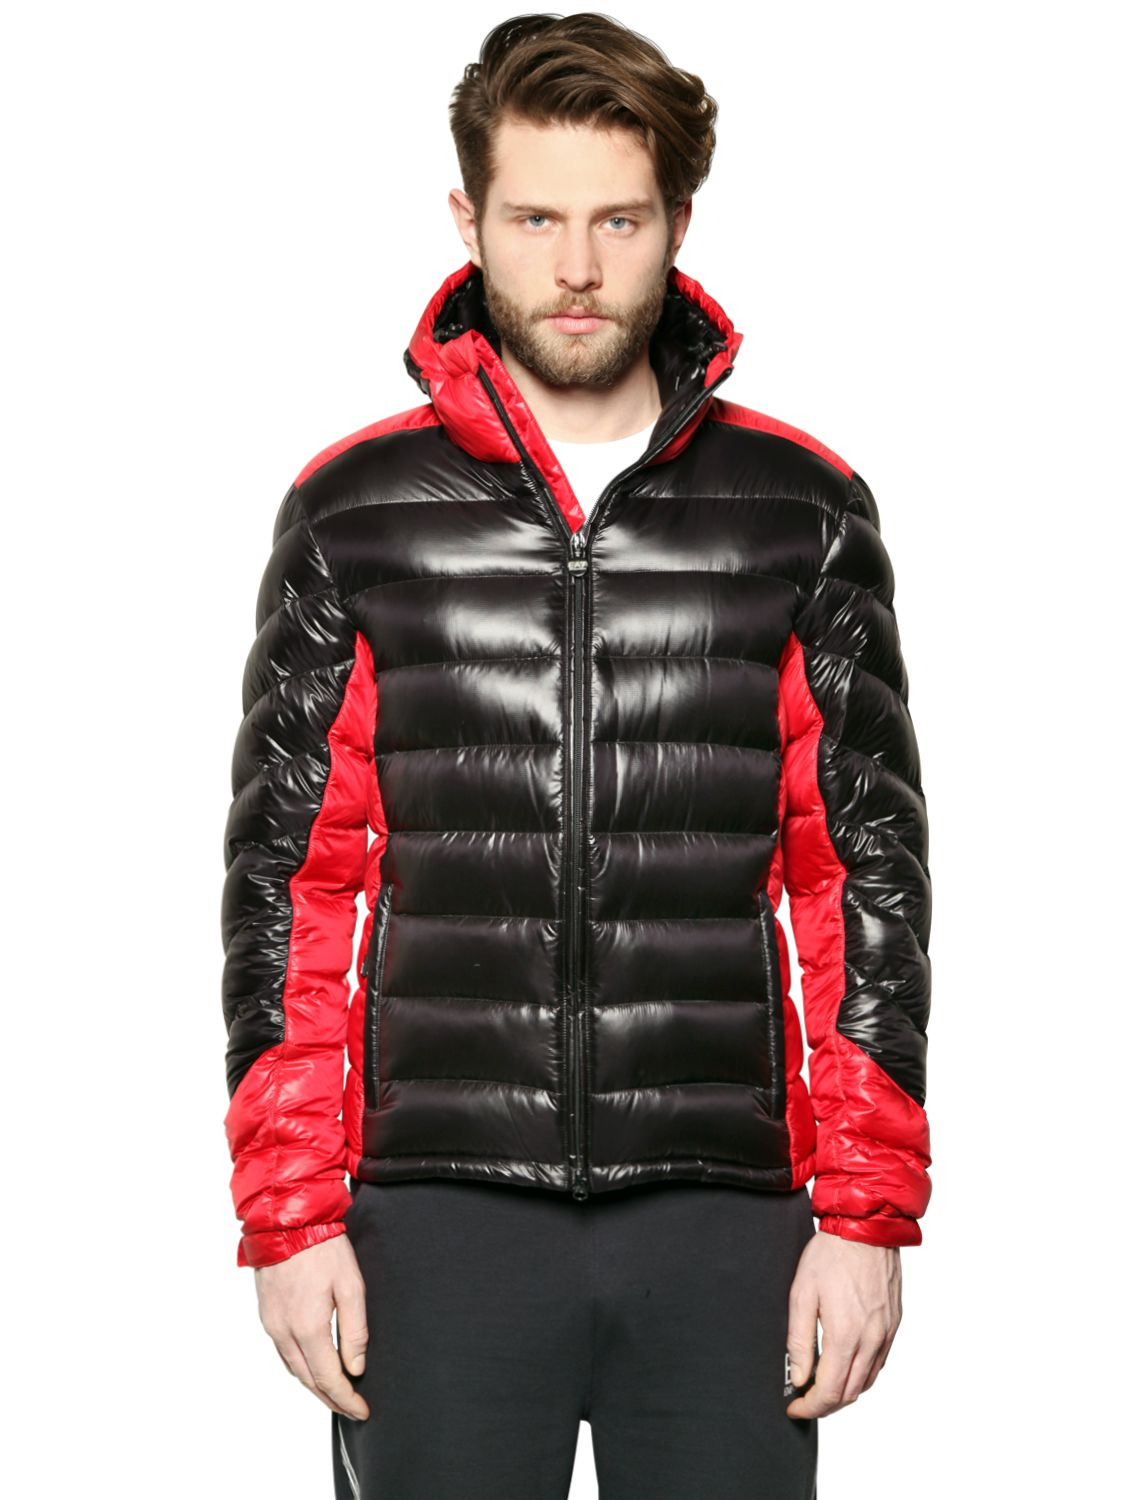 Men Hooded Down Jacket Shiny Outwear Coat Thick Zip Winter Parka Stand Collar @ Brand New · Unbranded. $ Buy It Now. Free Shipping. Men's Kilogram Goose Down Shiny Jacket - Black. Brand New. $ Buy It Now. Free Shipping. 4+ Watching. NEW Men's Cult of Individuality Heritage Black Shiny Jean JACKET Retail $